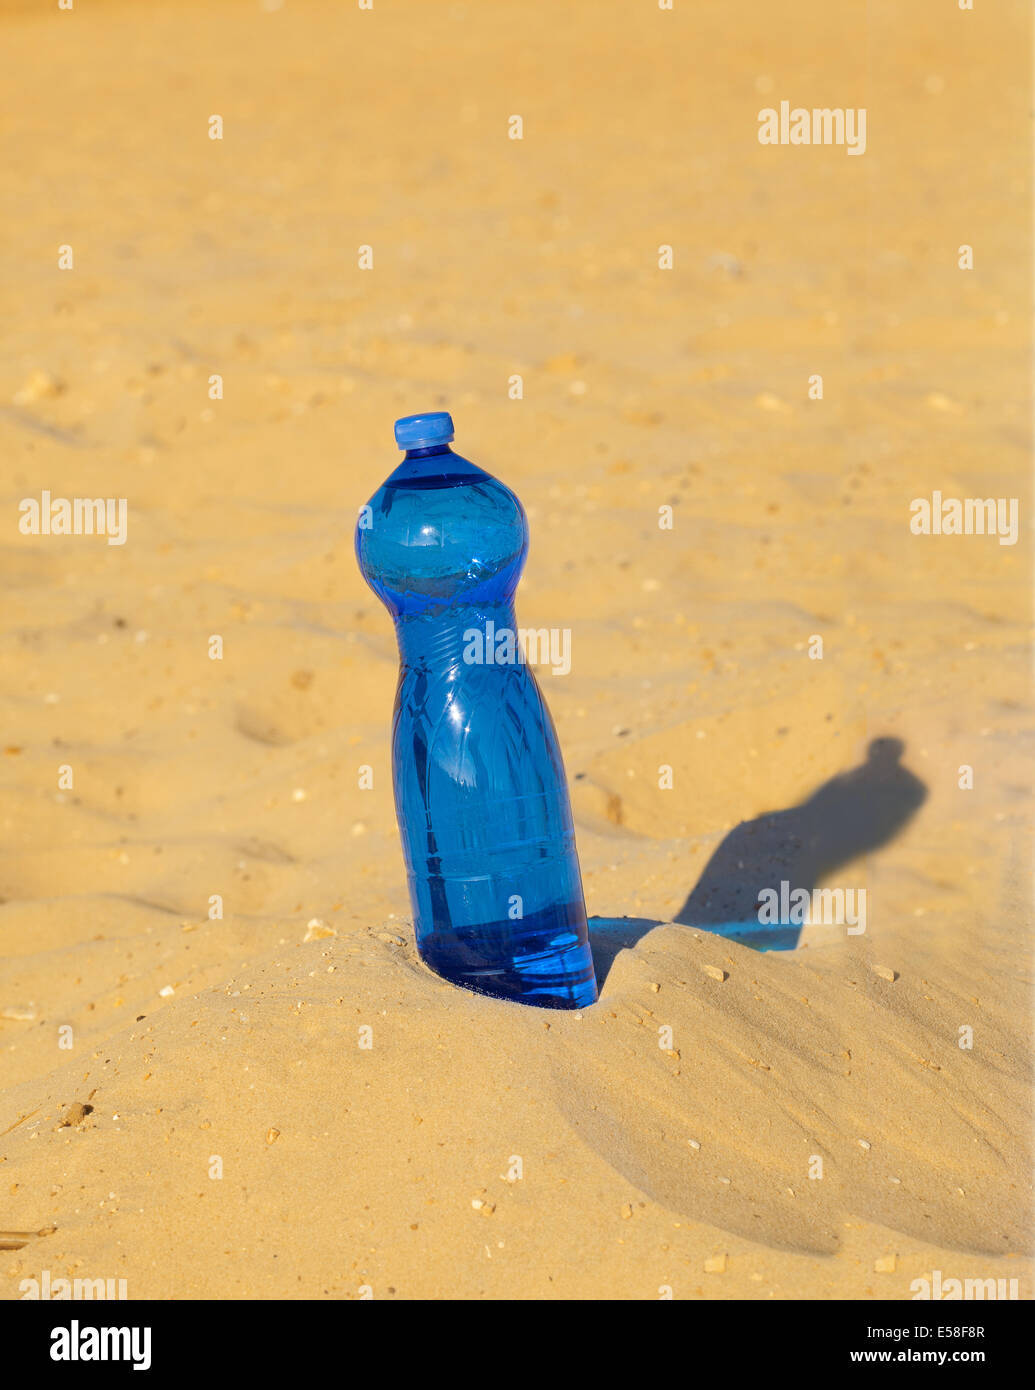 Bottle of water in the middle of the sandy desert - Stock Image